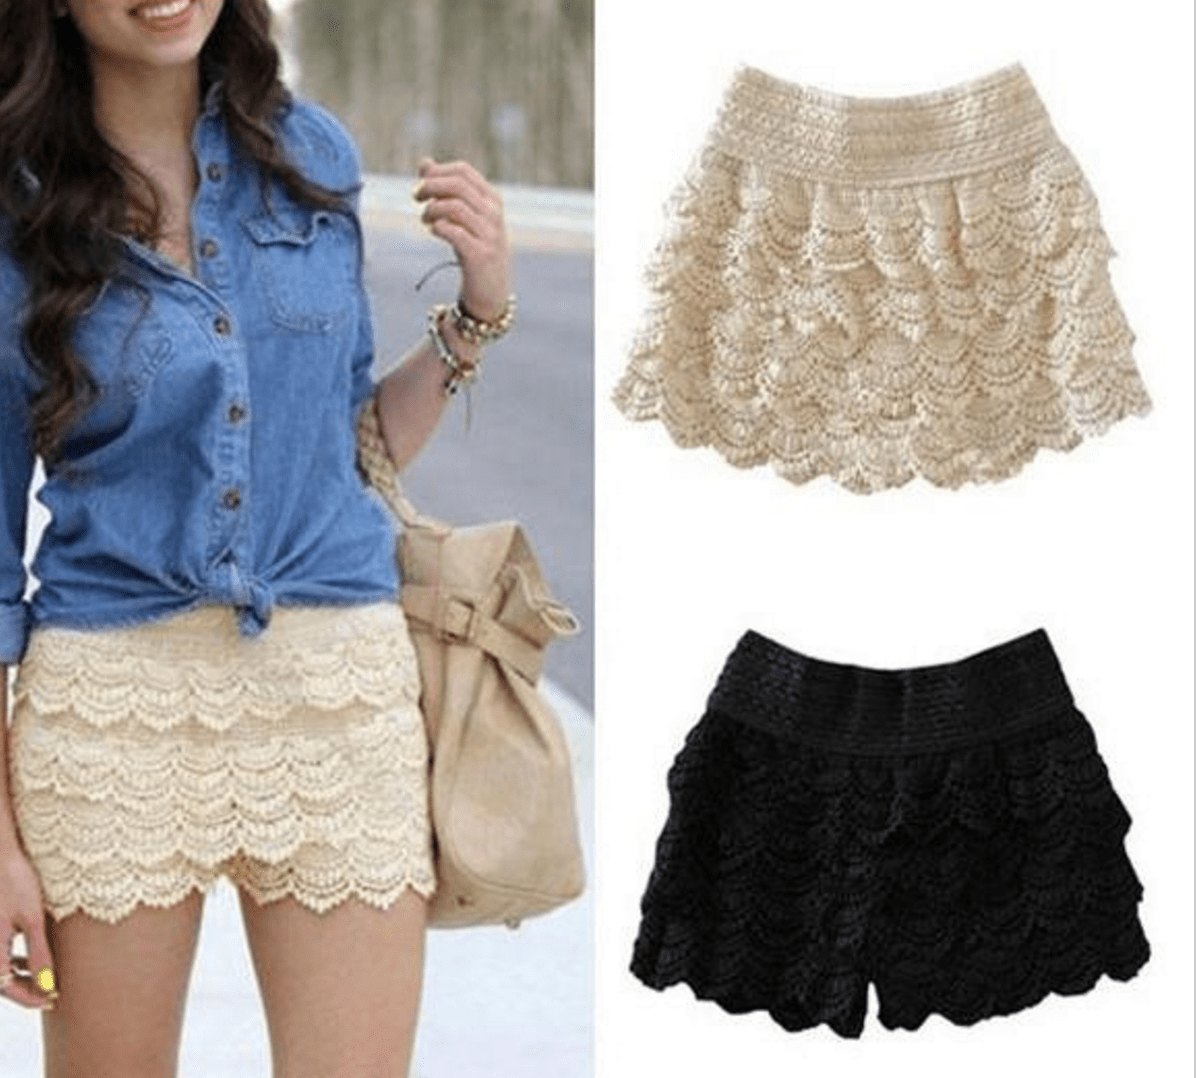 Korean Fashion - Shoes and Clothing - Mini Lace Shorts Skirt - Shorts -  - Gangnam Styles - 7